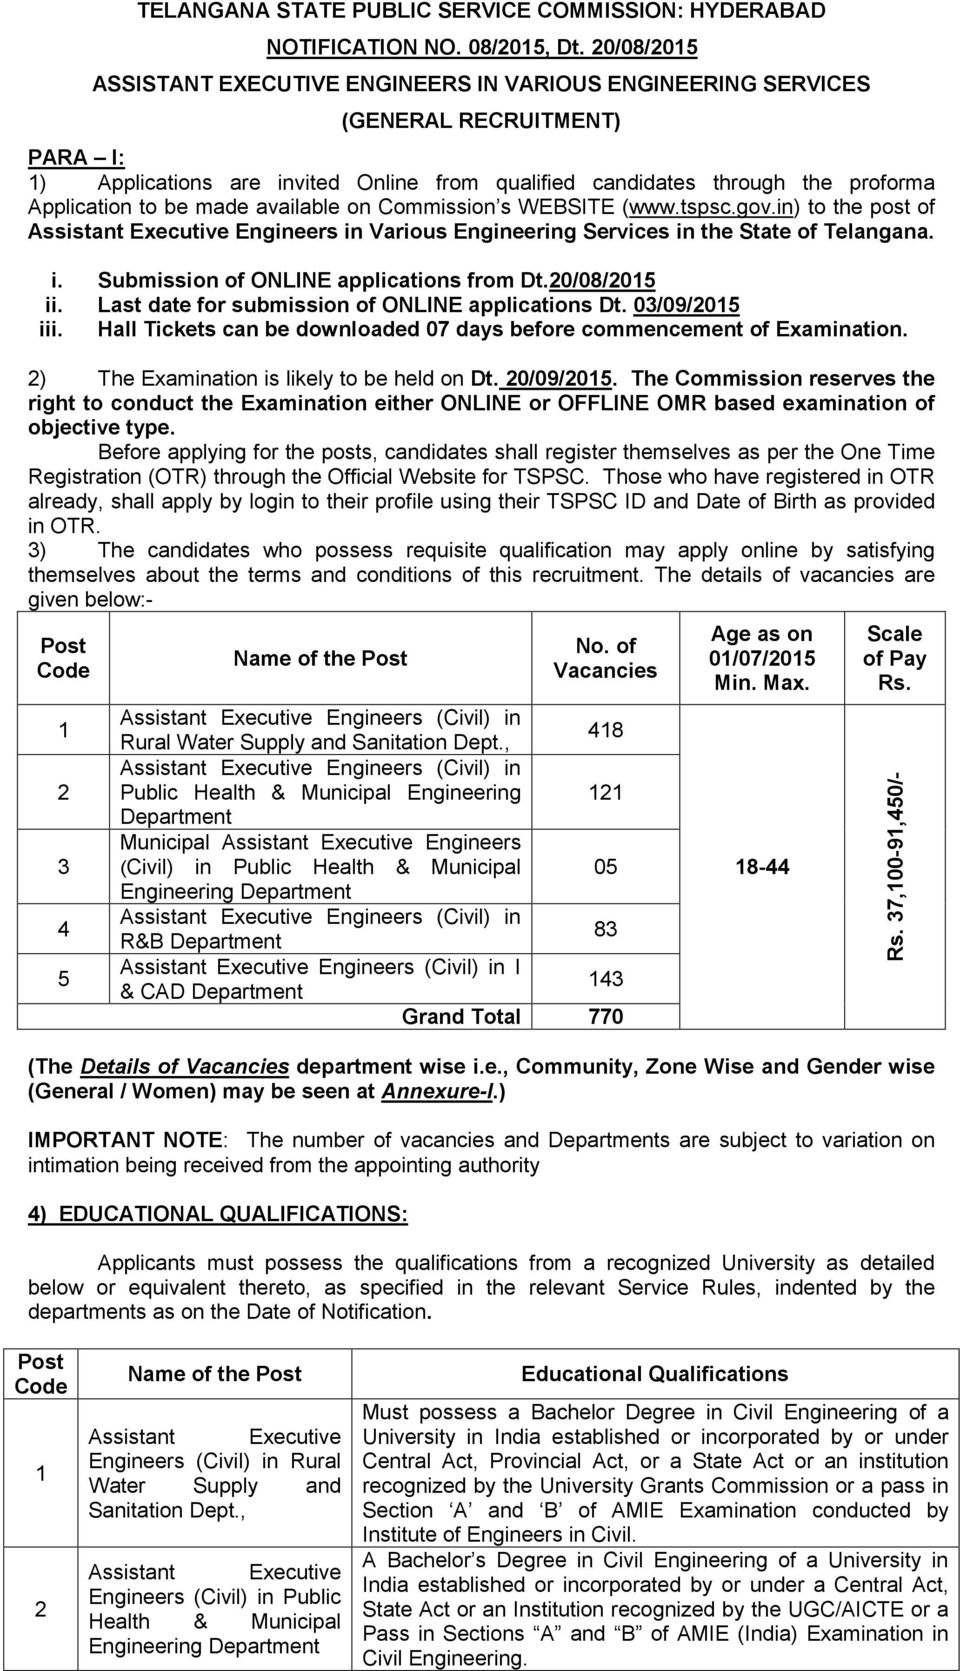 be made available on Commission s WEBSITE (www.tspsc.gov.in) to the post of Assistant Executive Engineers in Various Engineering Services in the State of Telangana. i. Submission of ONLINE applications from Dt.